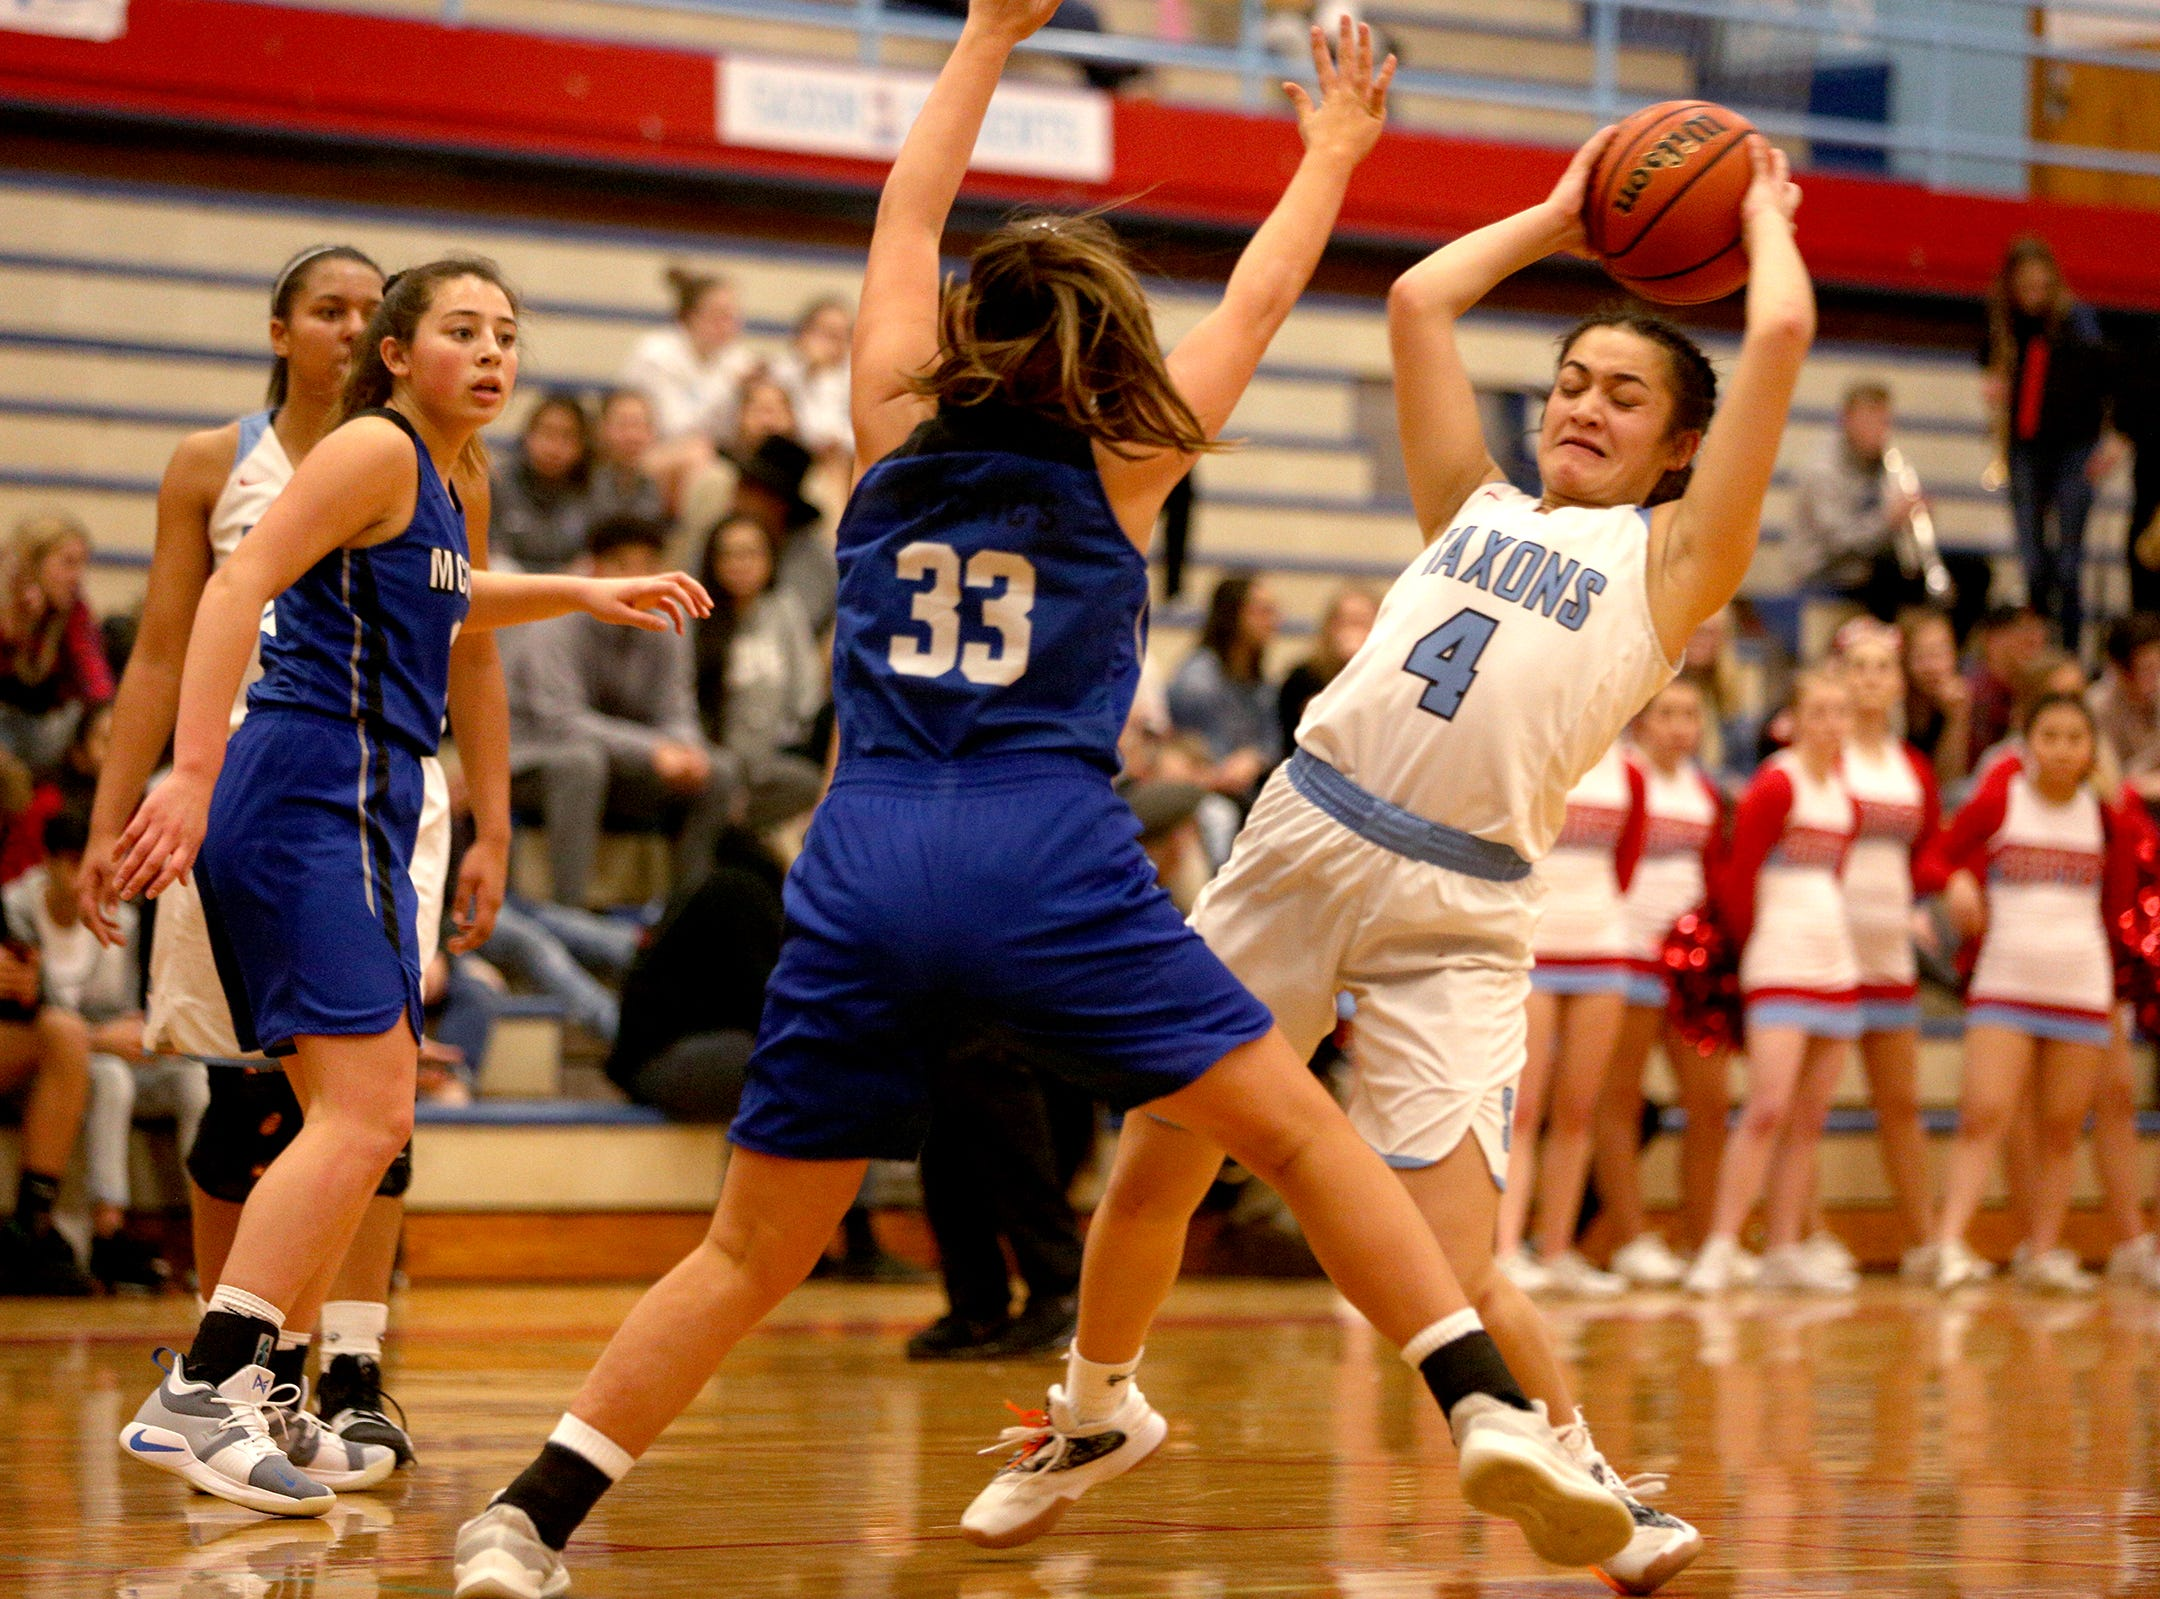 South Salem's Tiani Gebauer-Tinitali (4) during the South Salem High School girls basketball game against McNary High School in Salem on Thursday, Jan. 31, 2019.